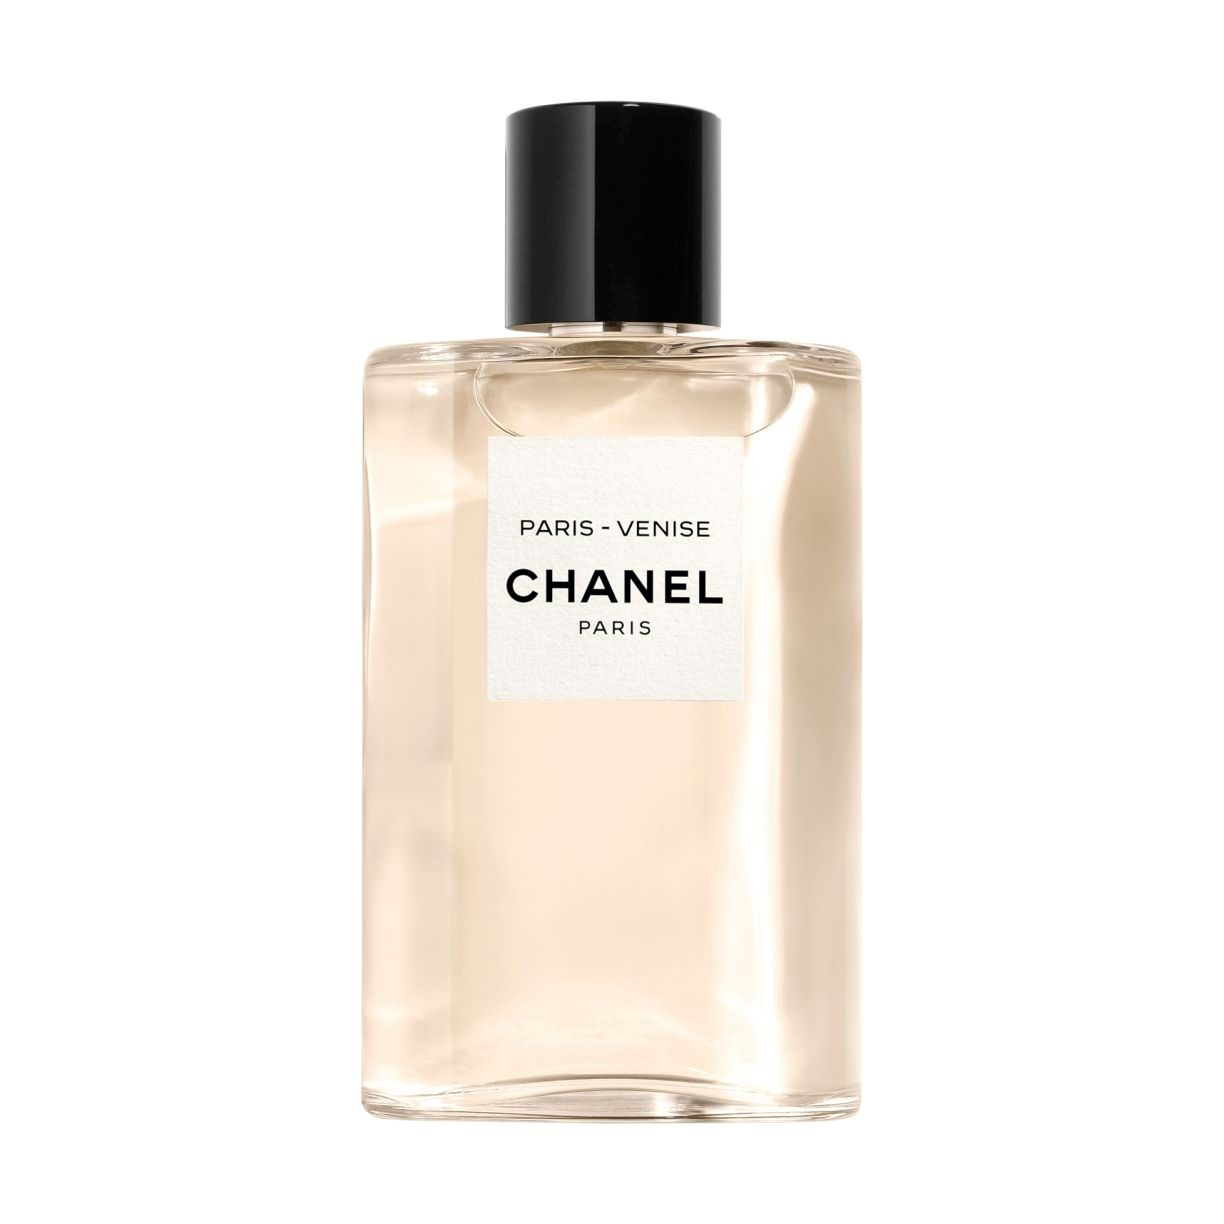 LES EAUX DE CHANEL PARIS - VENISE - EAU DE TOILETTE SPRAY 125ml